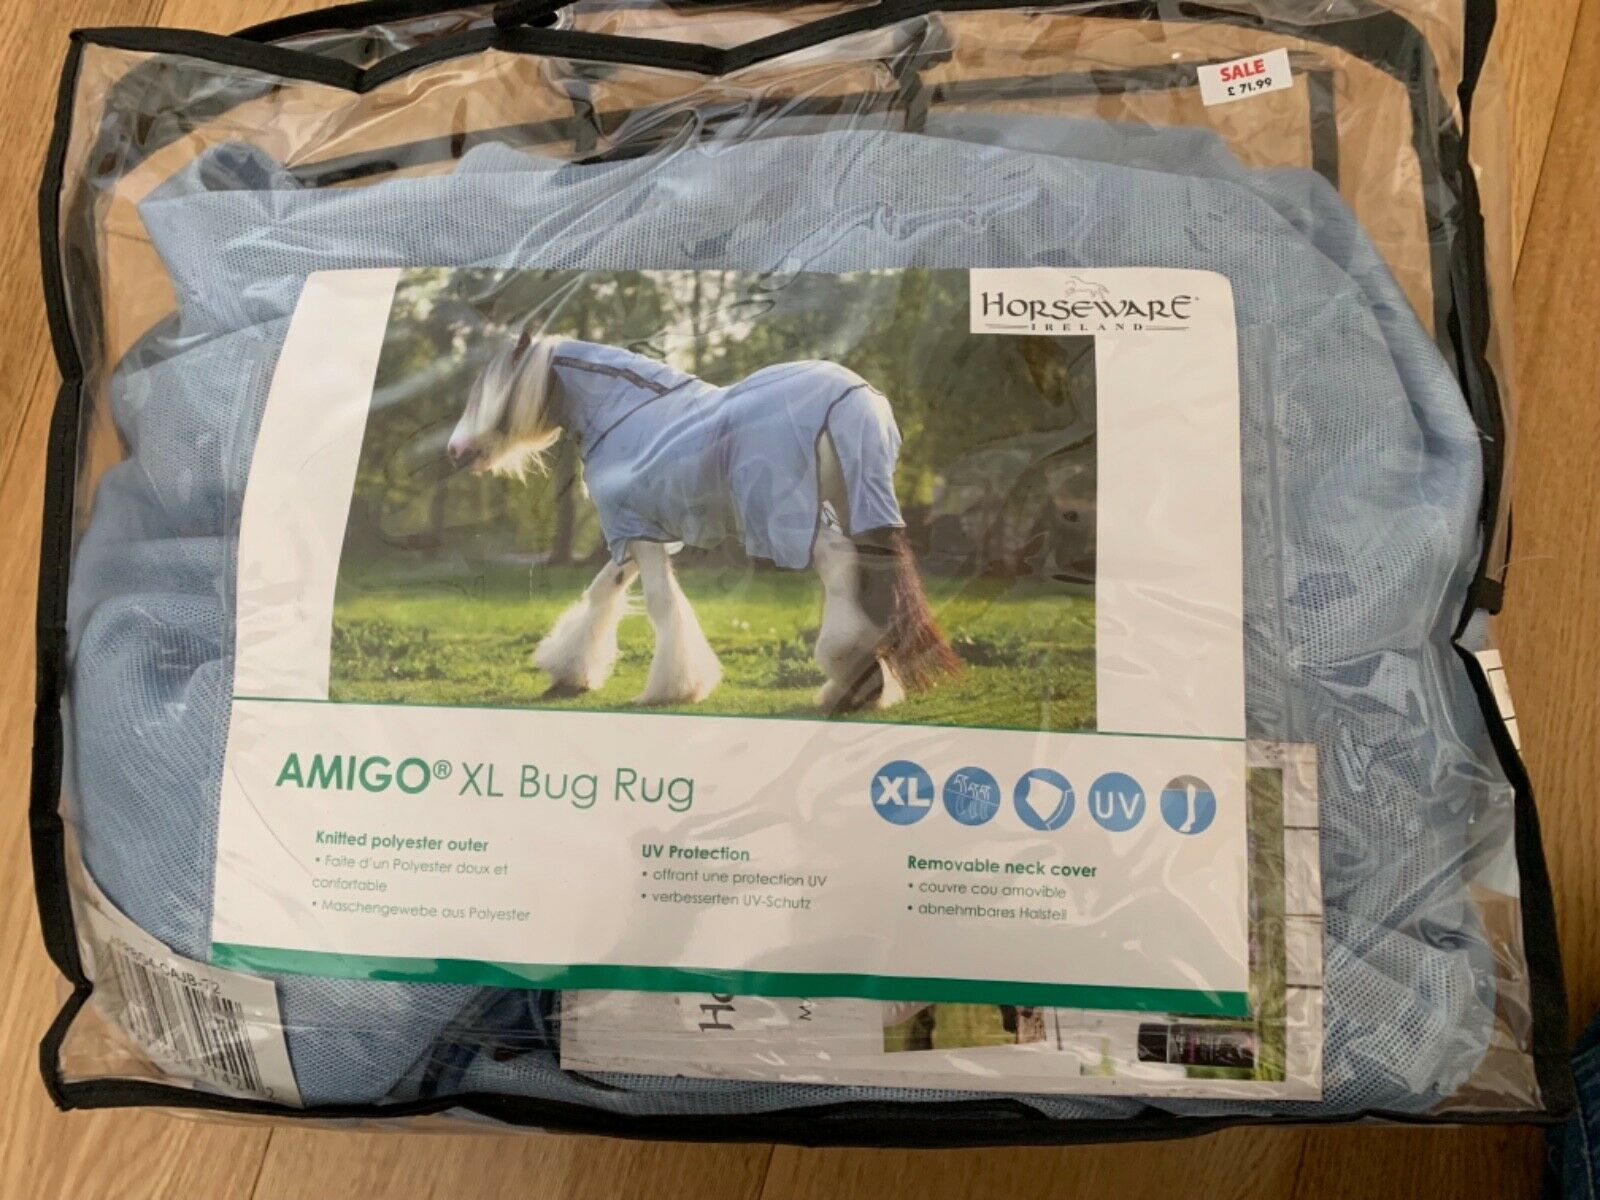 Horseware Amigo XL Fly Rug Bug Rug 5ft 9 BNWT RRP